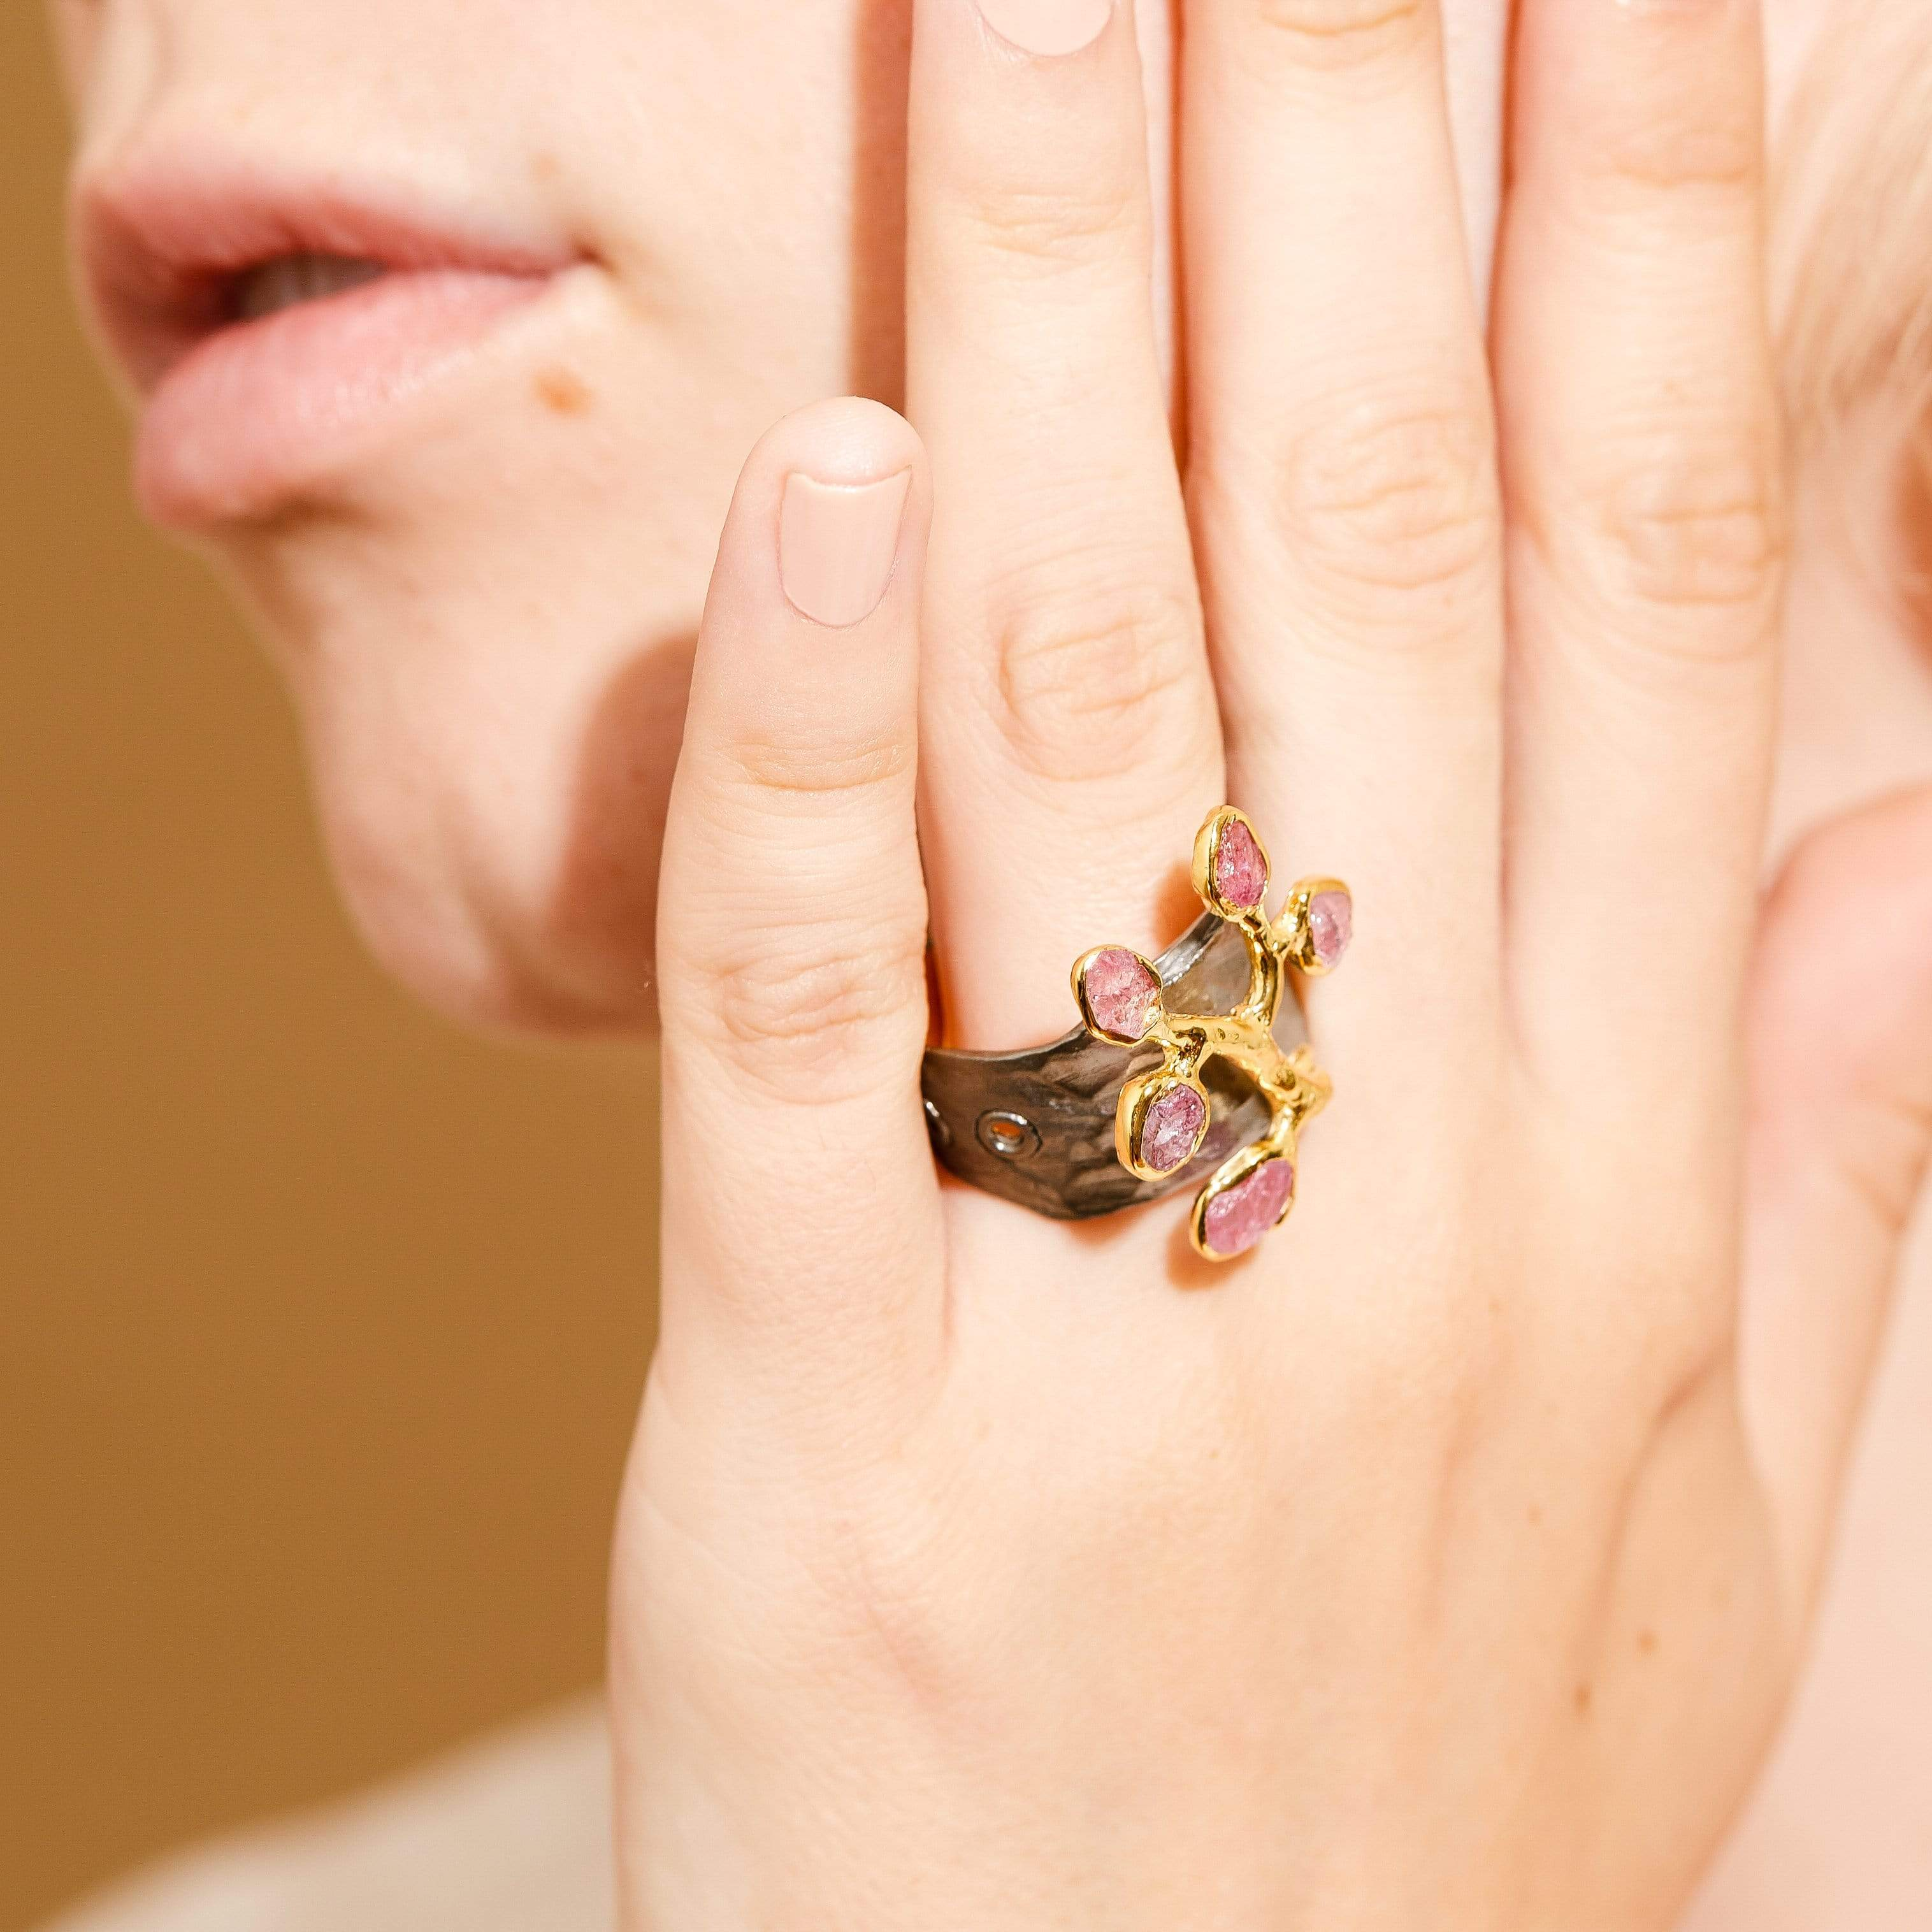 Cerafia Ring, Gold, gray, Handmade, Rhodium, Spinel, spo-disabled, StoneColor:Pink, Style:Fantasy, Type:Garden, Type:StoneCandyOut Ring